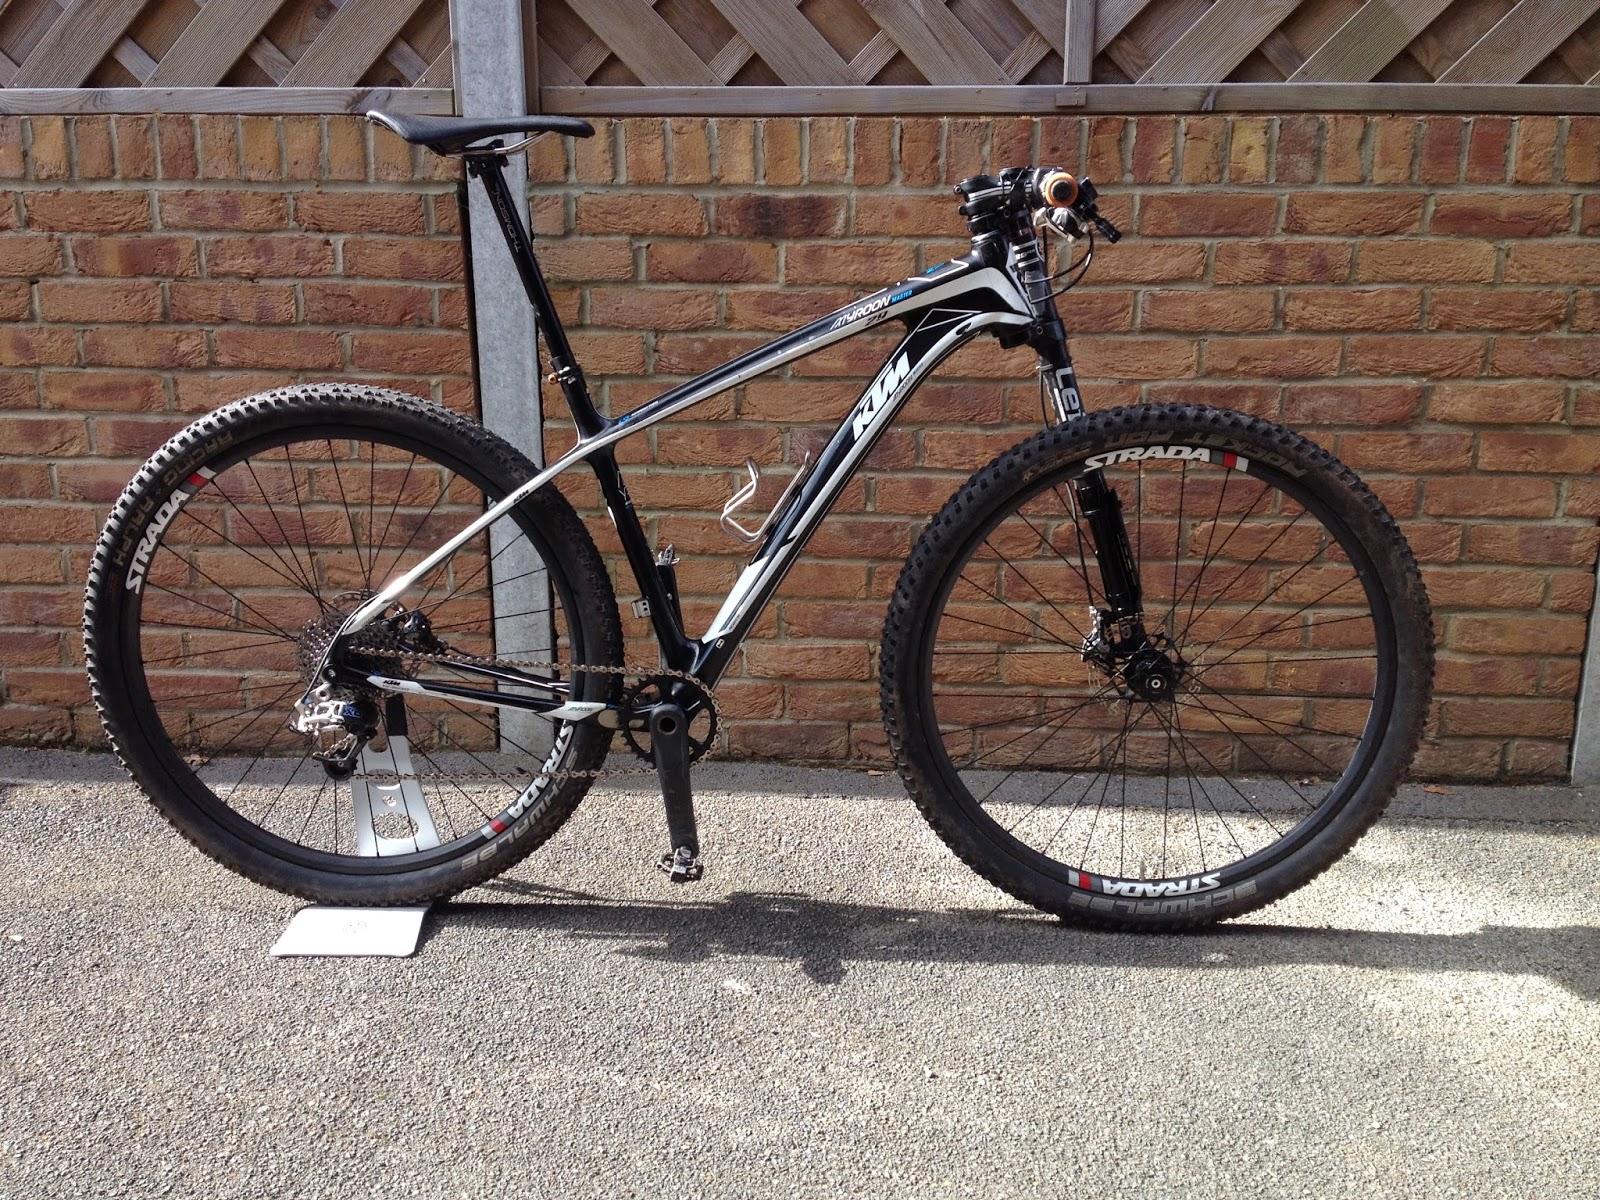 Chris Noble 2014 Race Bike Review Ktm Myroon 29er